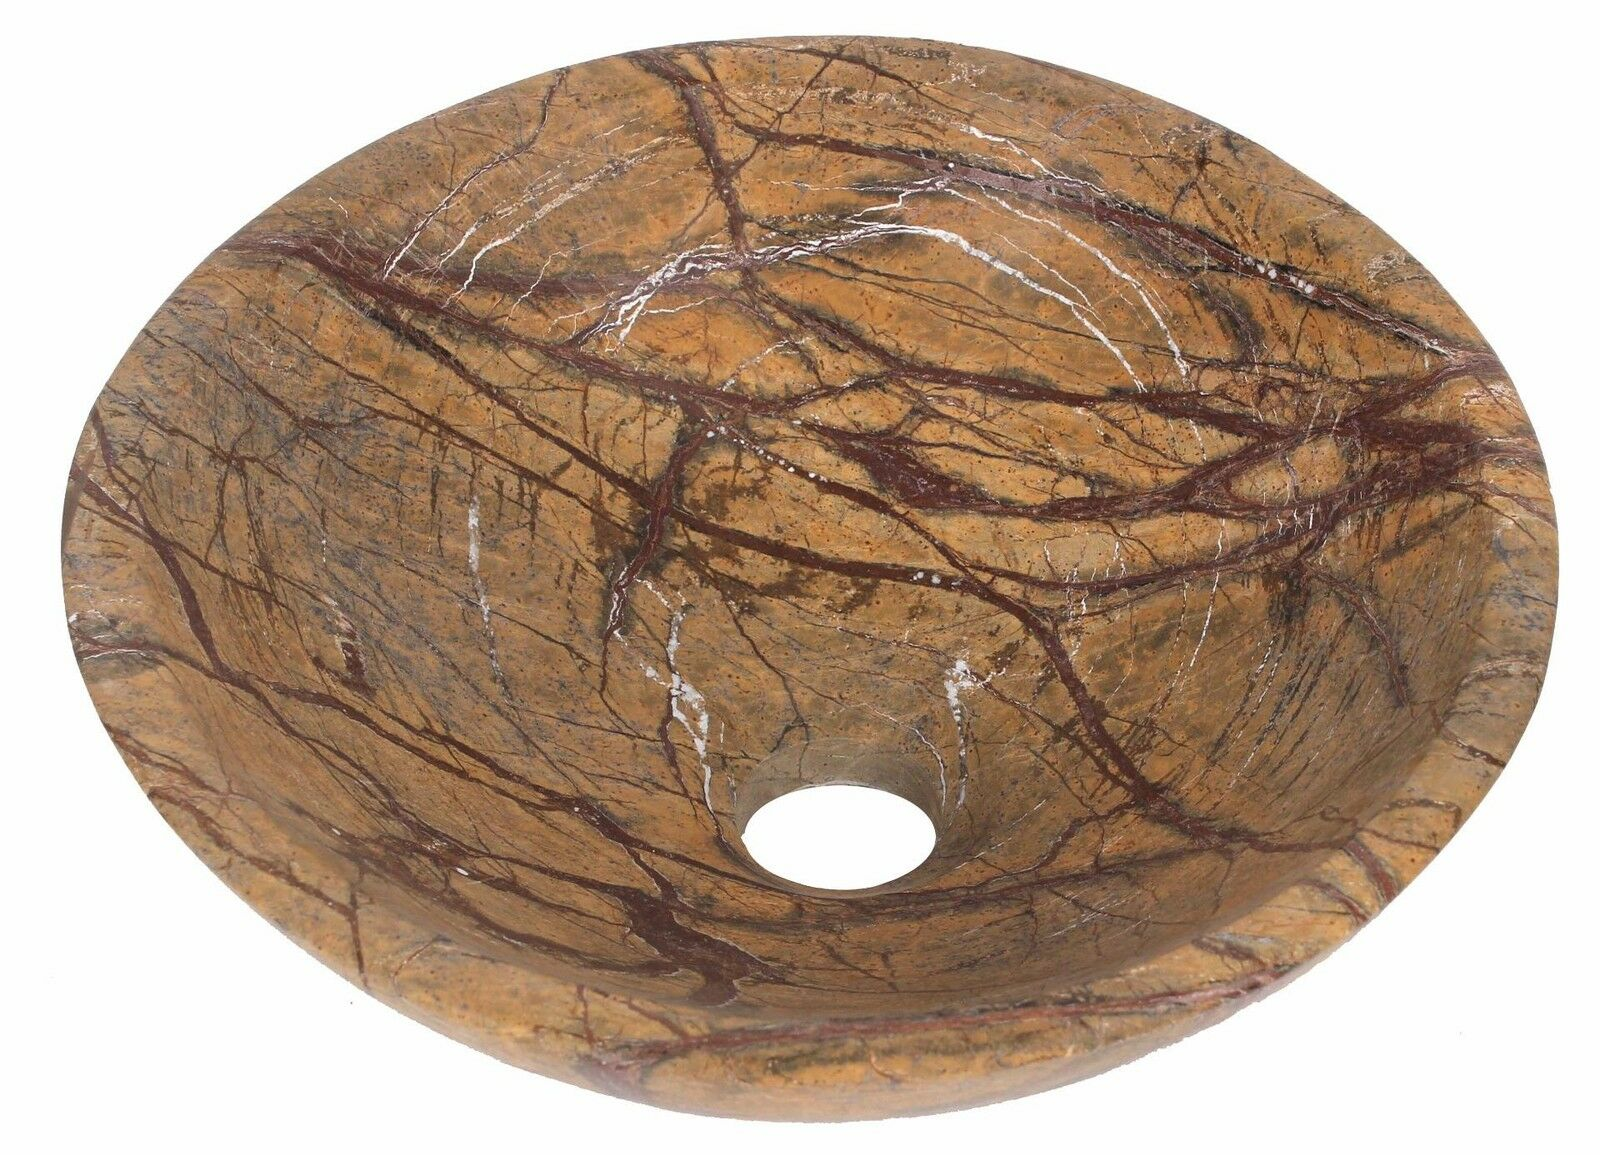 Rain Forest marrón Marble Hand Wash Basin Bowl Bathroom 350mm diameter (B0048)